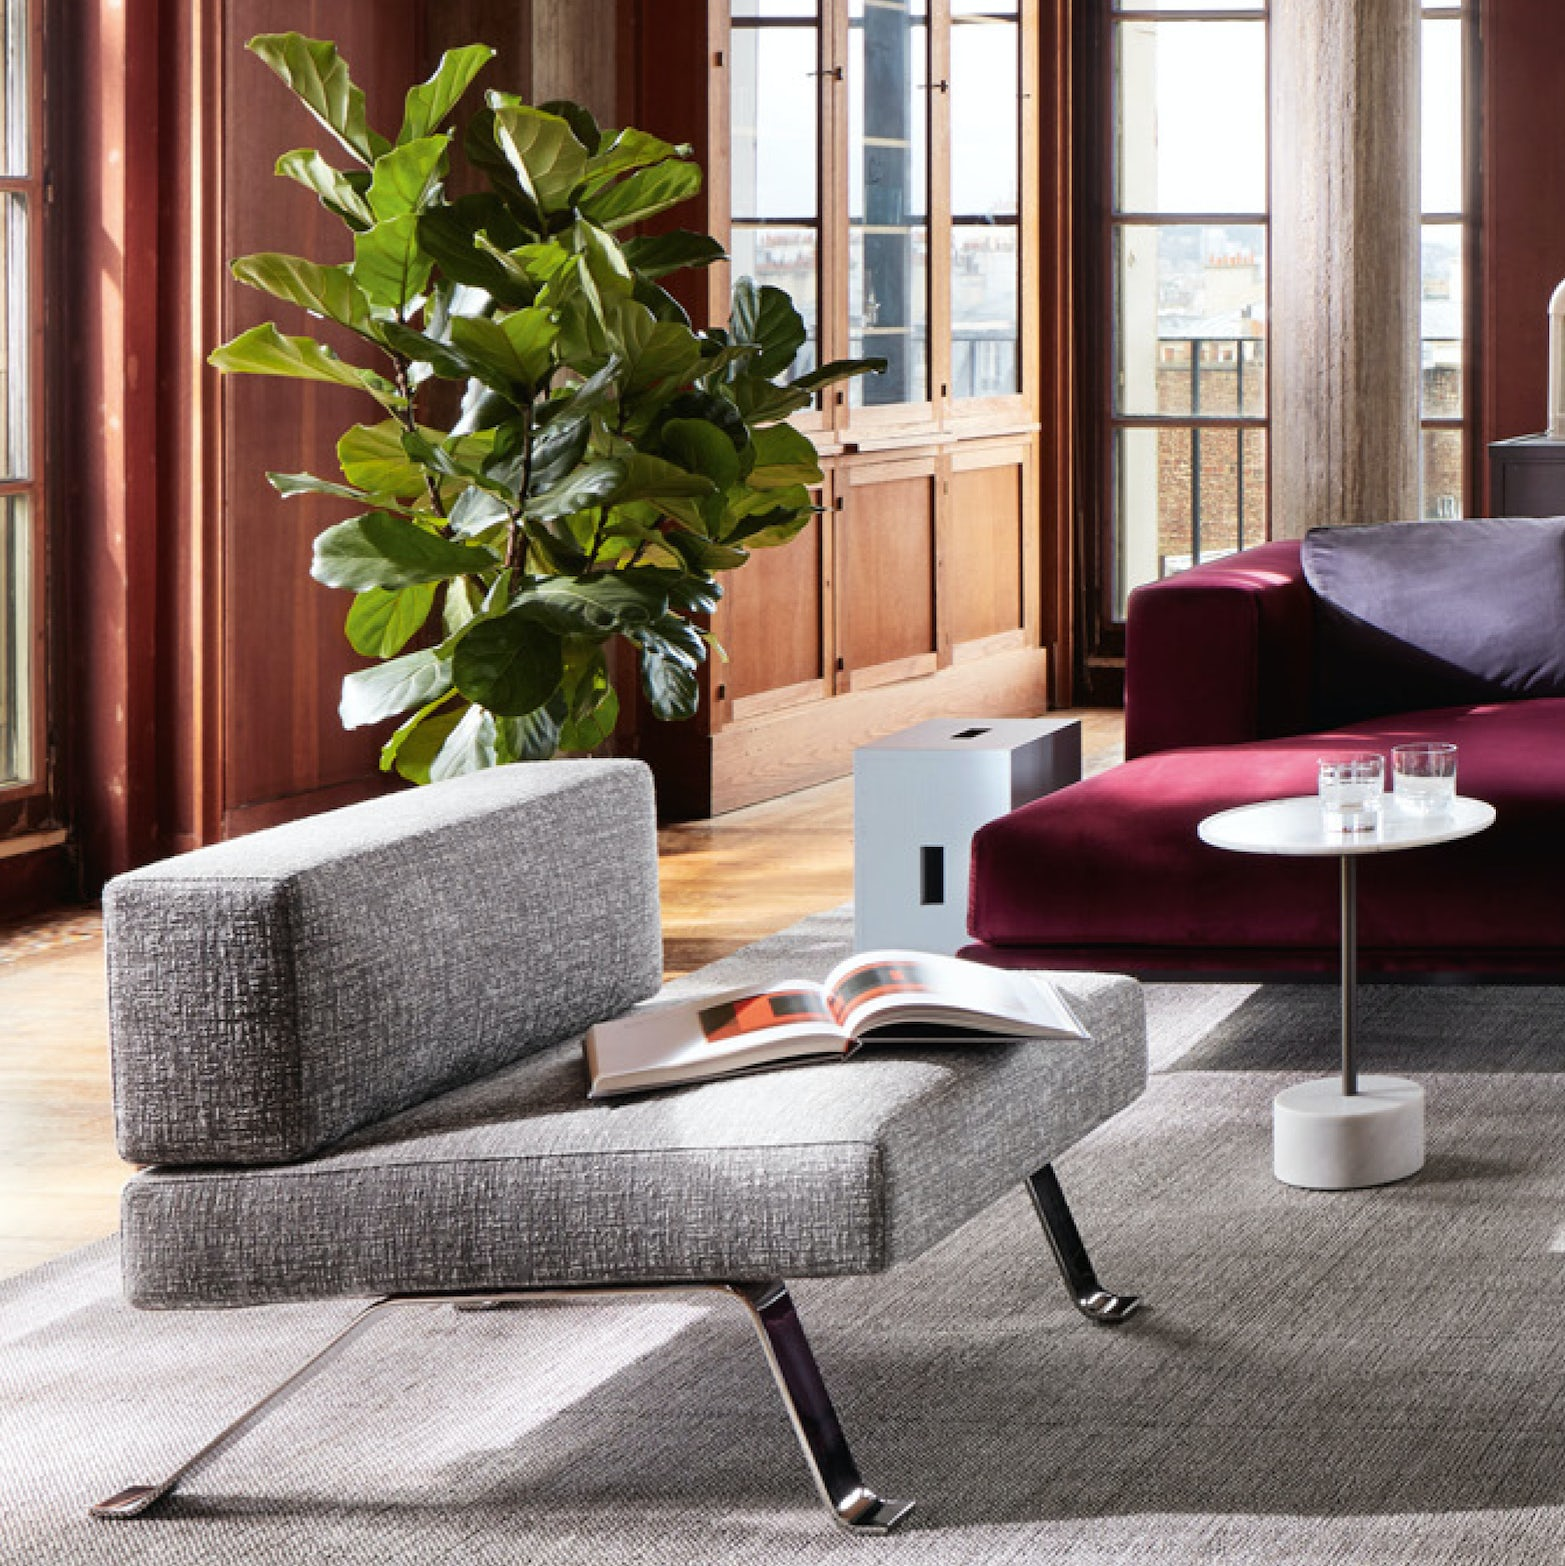 Ombra lounge chair Charlotte Perriand Cassina 2 2